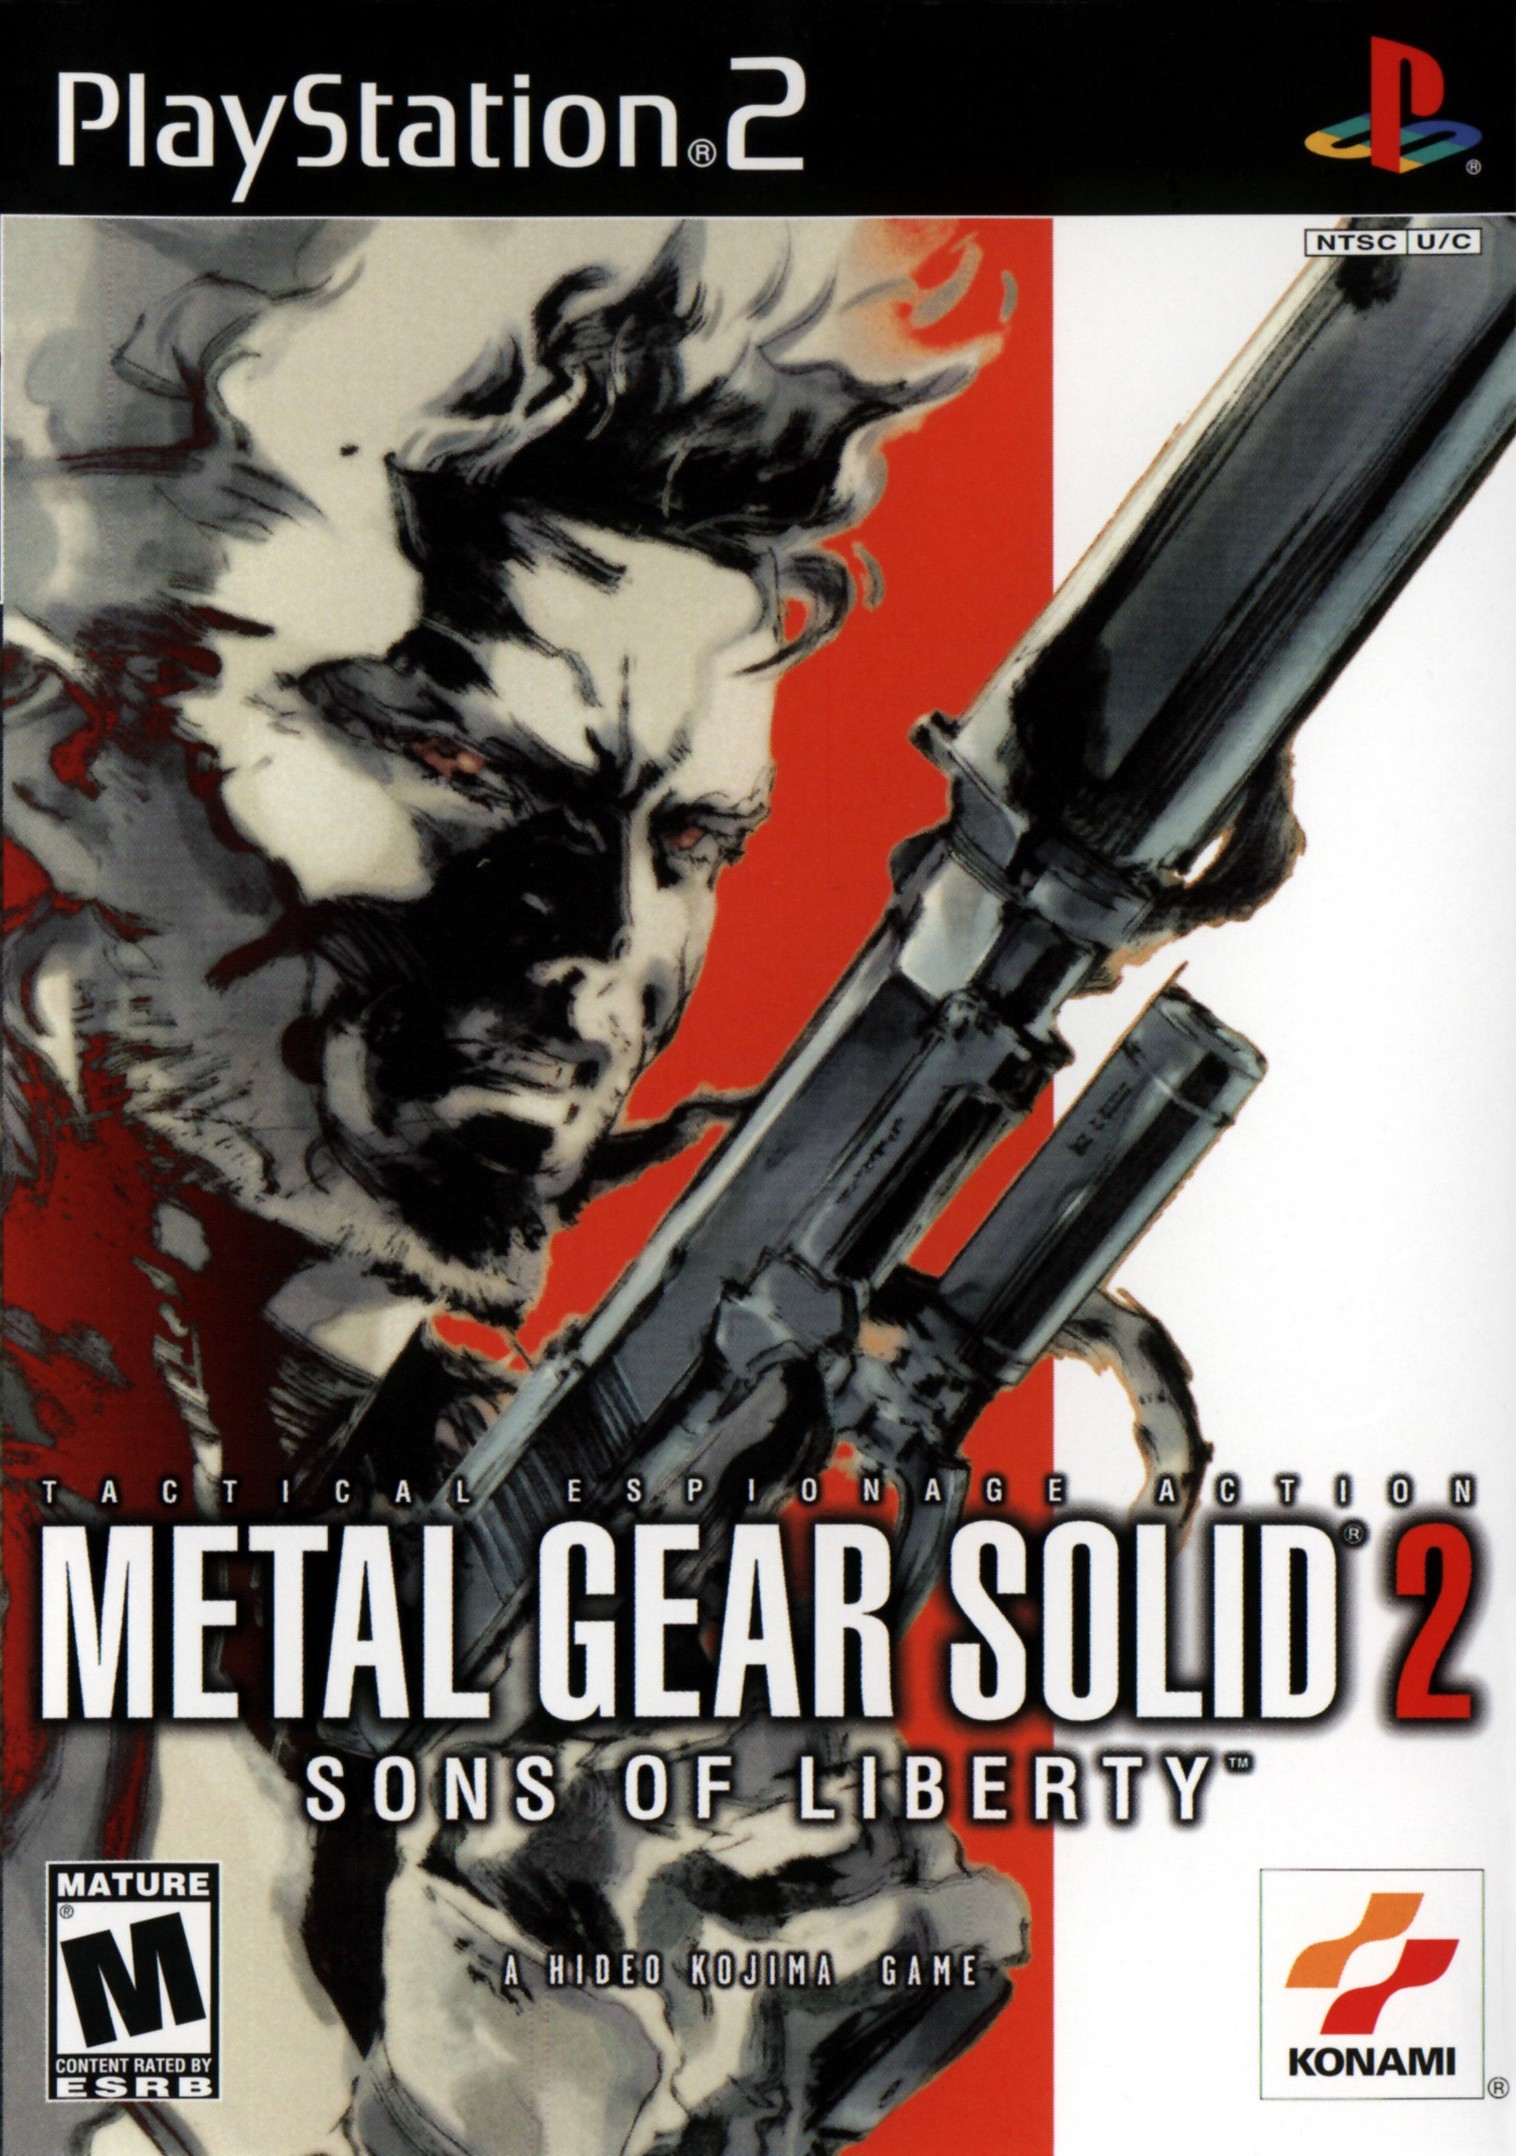 Box artwork for Metal Gear Solid 2: Sons of Liberty.